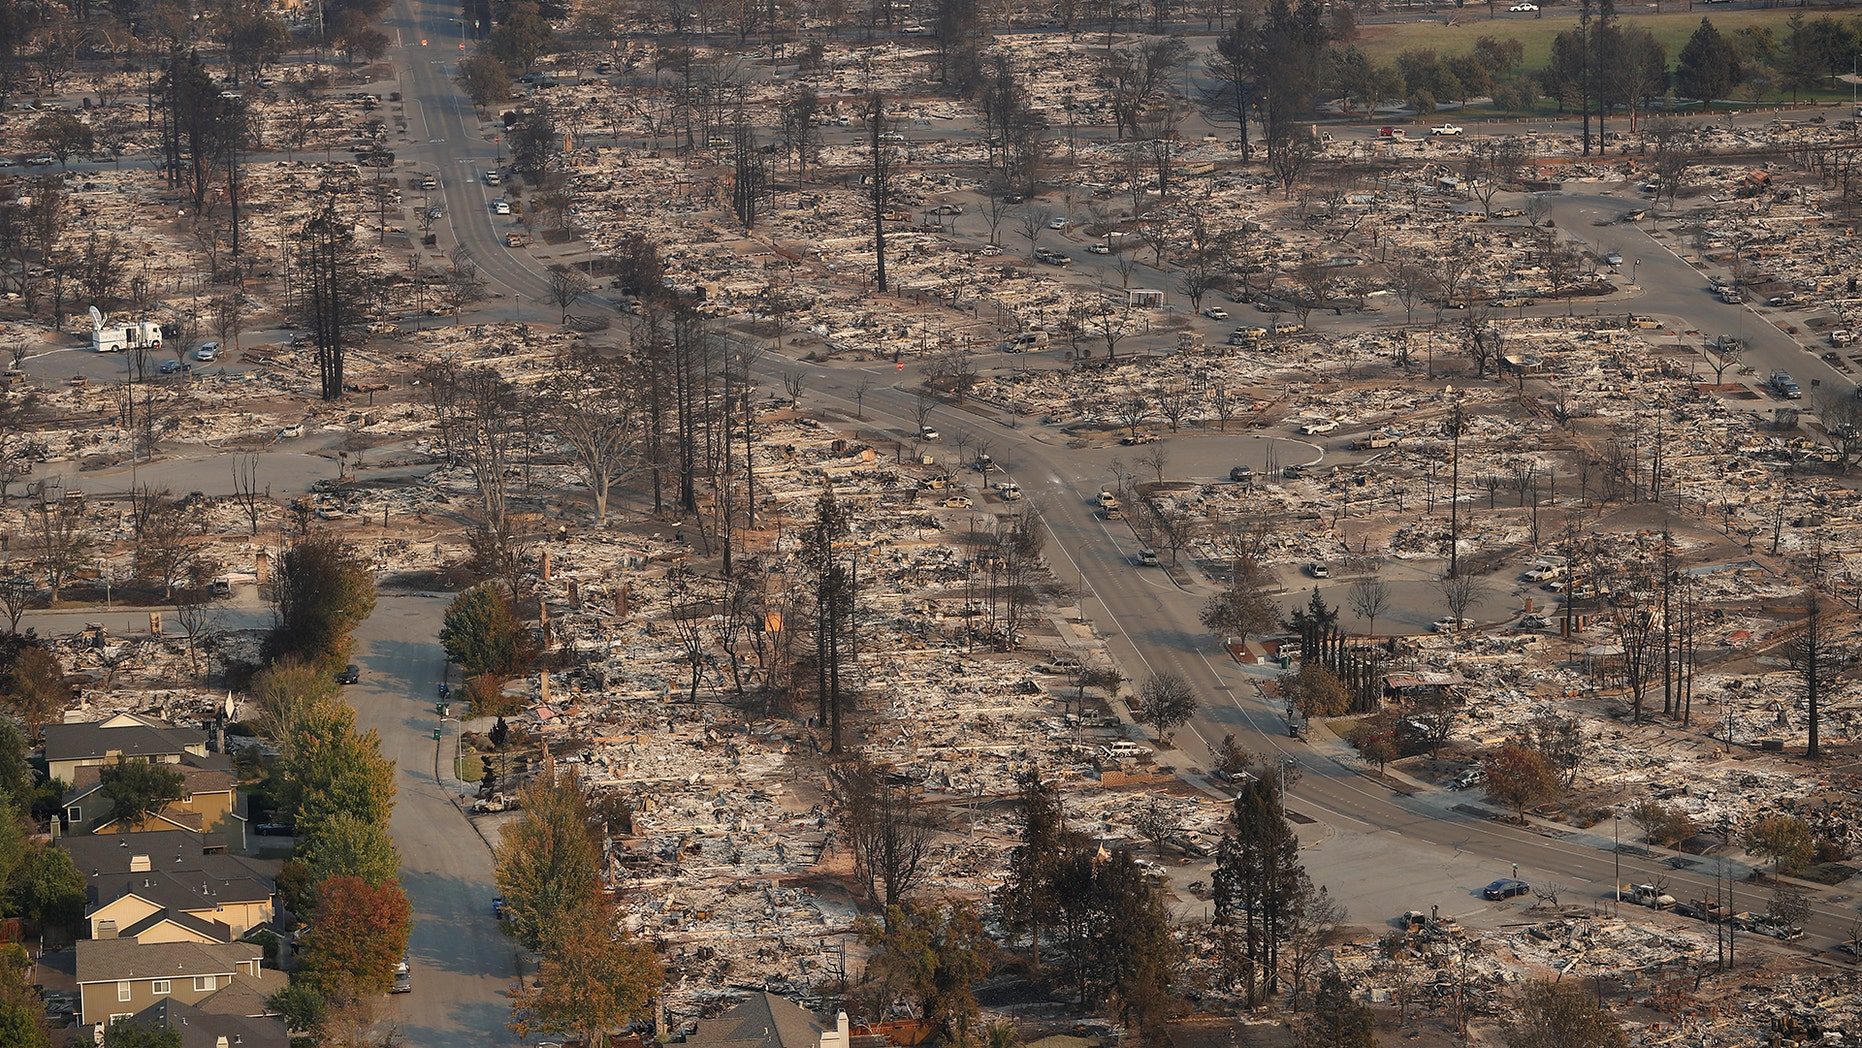 An aerial view of properties destroyed by the Tubbs Fire is seen in Santa Rosa, California, October 11, 2017. REUTERS/Stephen Lam - RC12D4D0BCB0